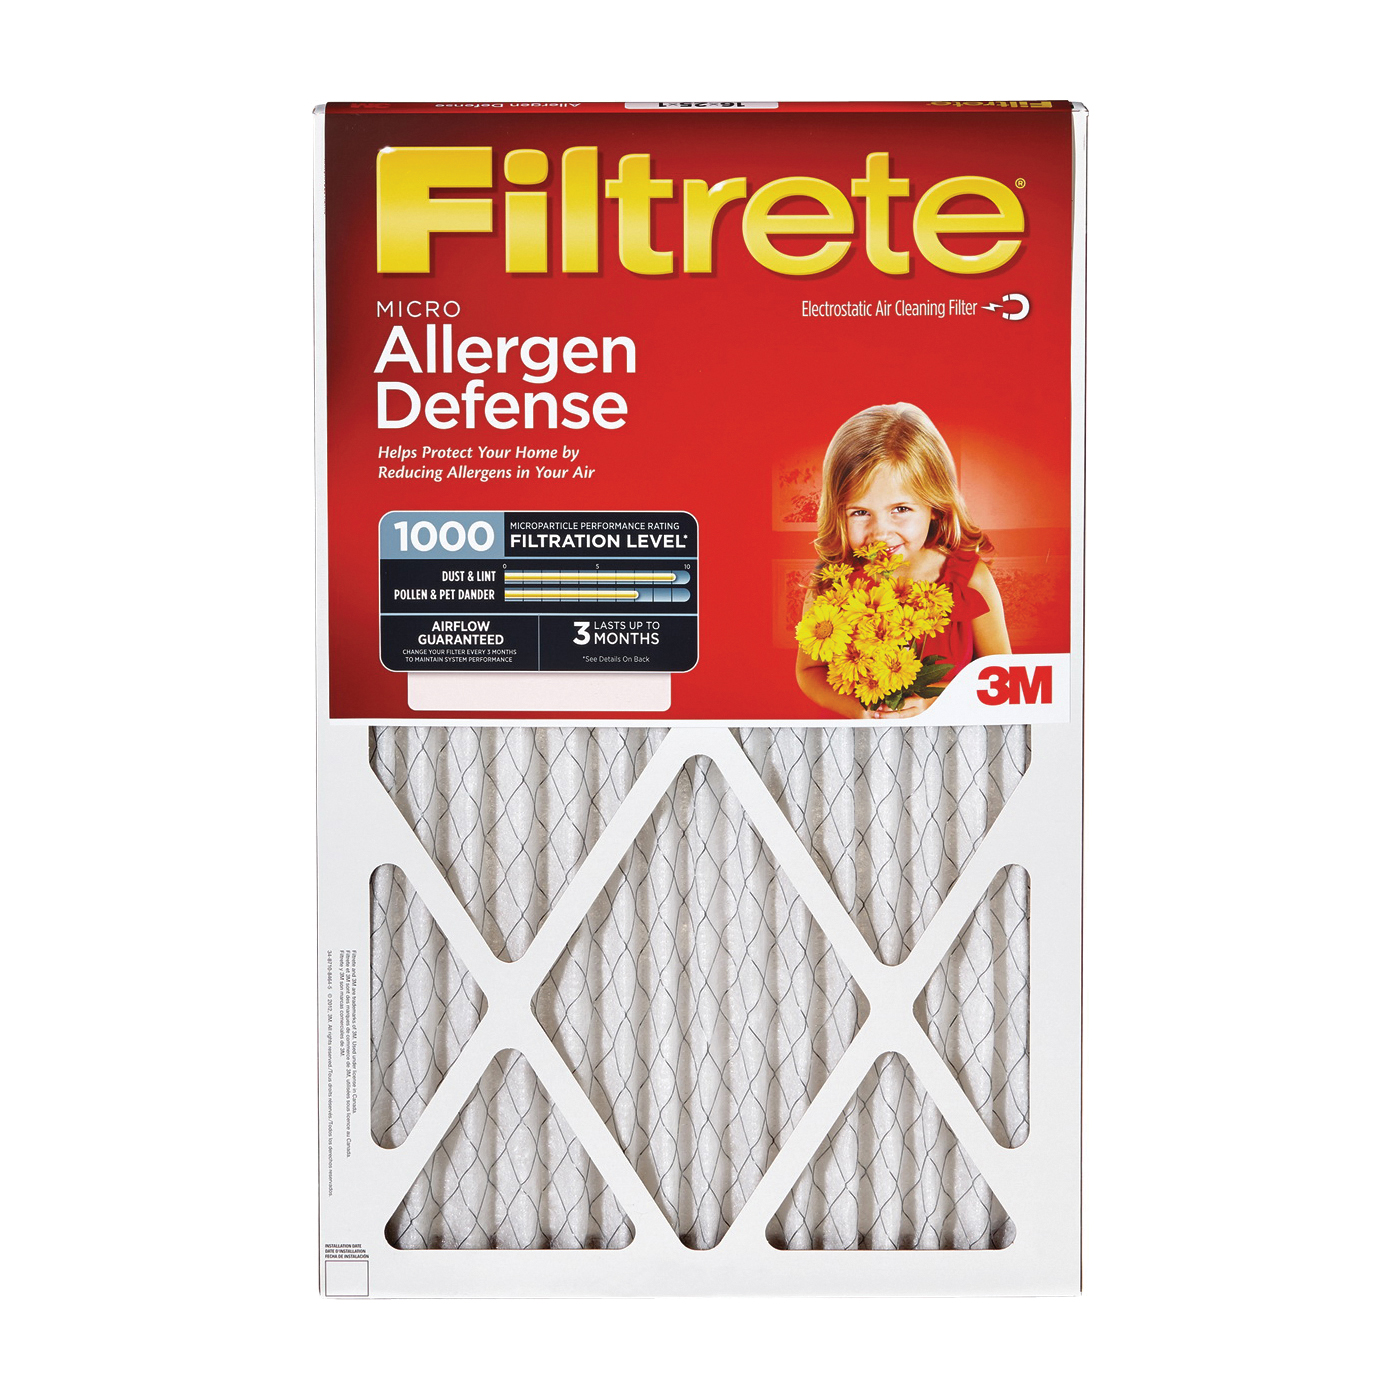 Picture of Filtrete 9803DC-6 Micro Air Filter, 25 in L, 20 in W, 11 MERV, 90 % Filter Efficiency, Pleated Fabric Filter Media